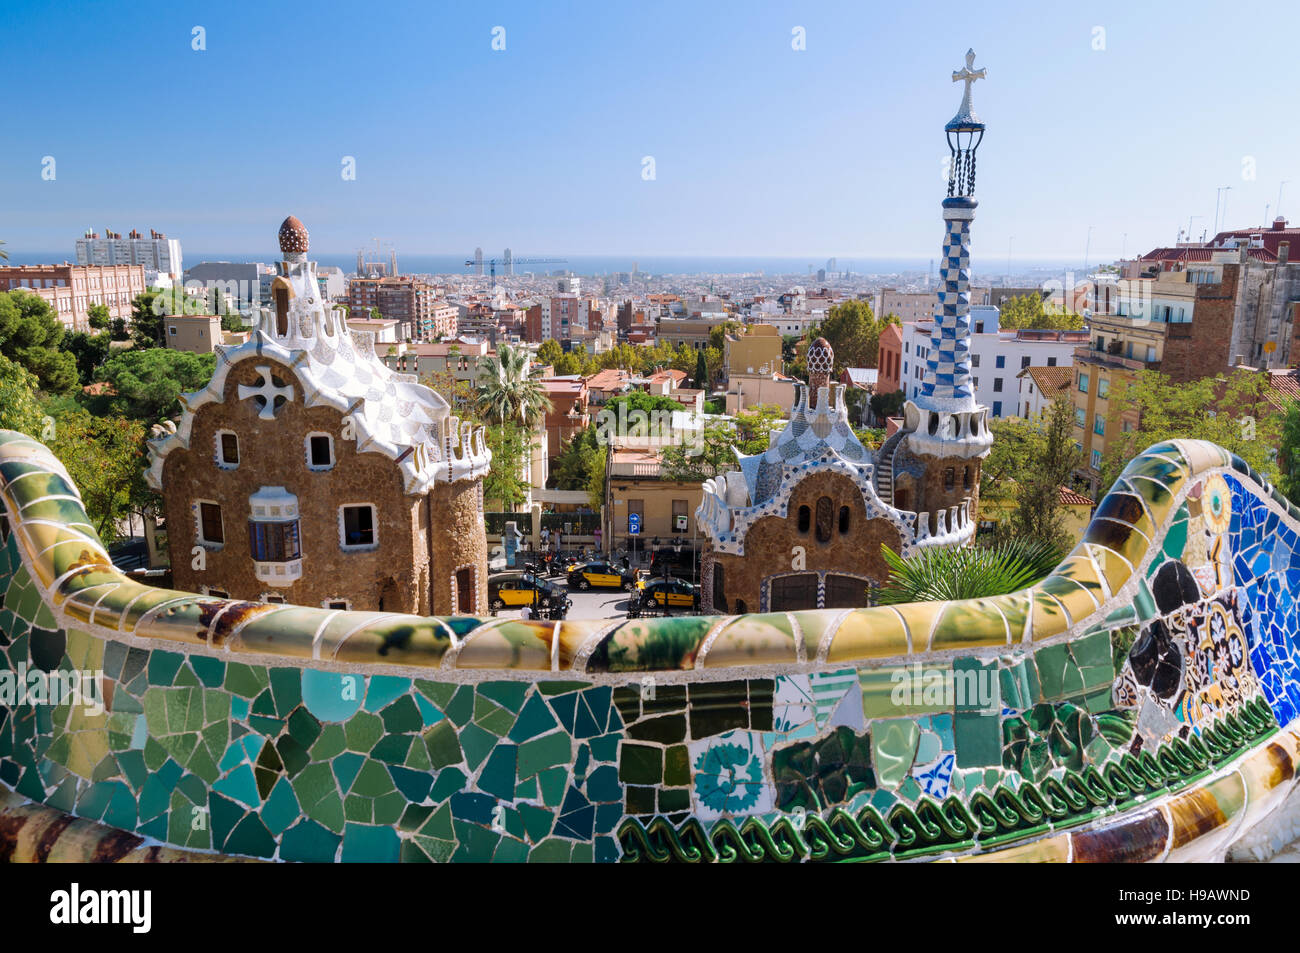 The Park Güell is a public park system composed of gardens and architectonic elements located on Carmel Hill, - Stock Image